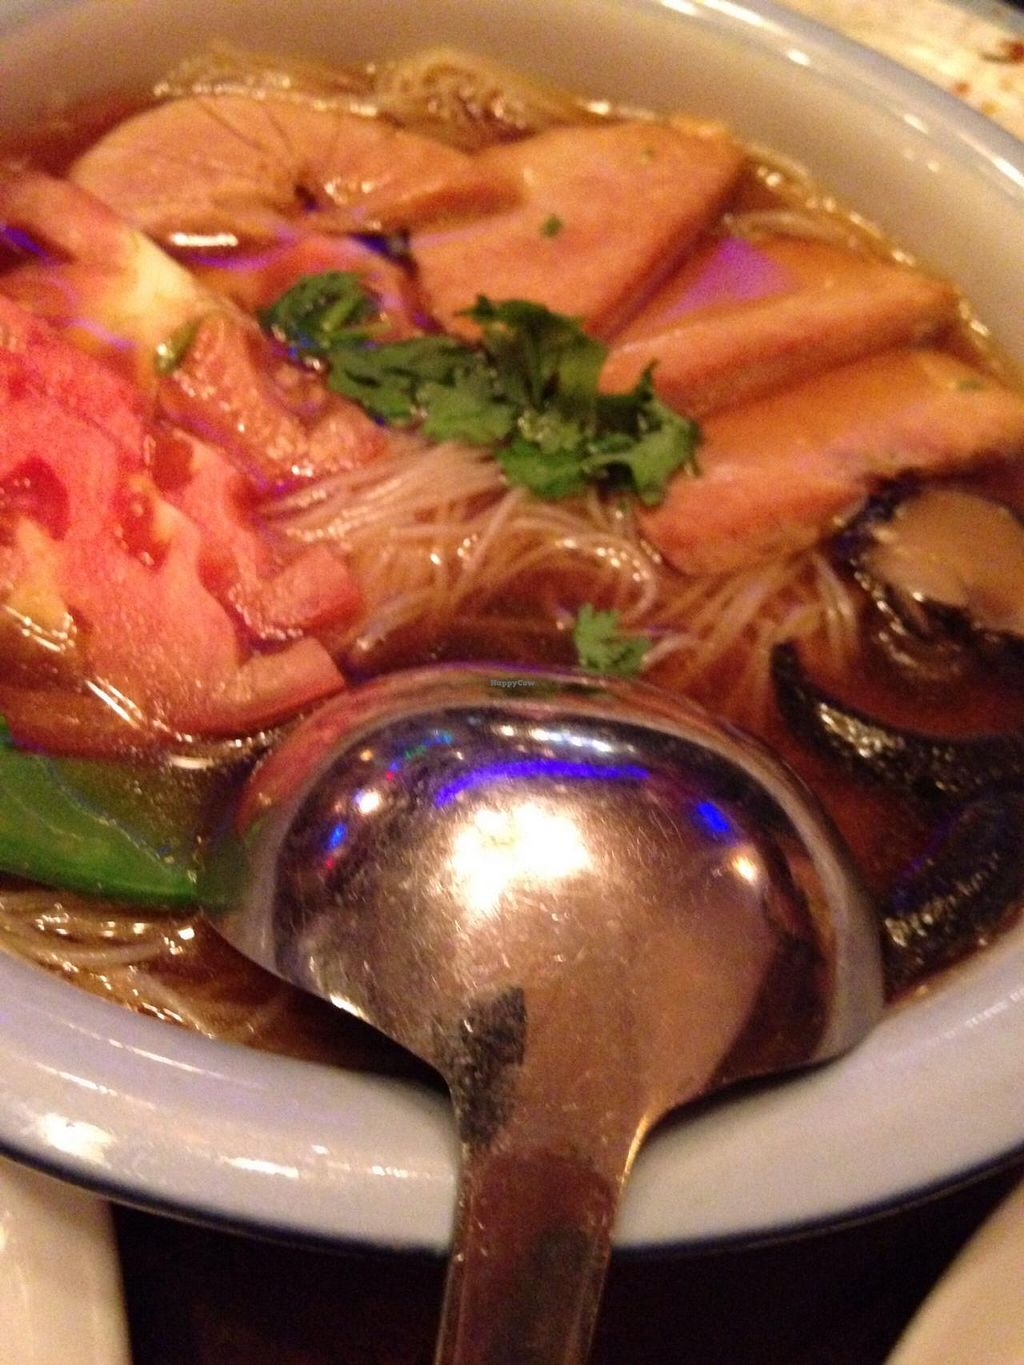 """Photo of Su Xing House  by <a href=""""/members/profile/cookiem"""">cookiem</a> <br/>Vegetable rice noodle soup <br/> July 24, 2015  - <a href='/contact/abuse/image/7118/110765'>Report</a>"""